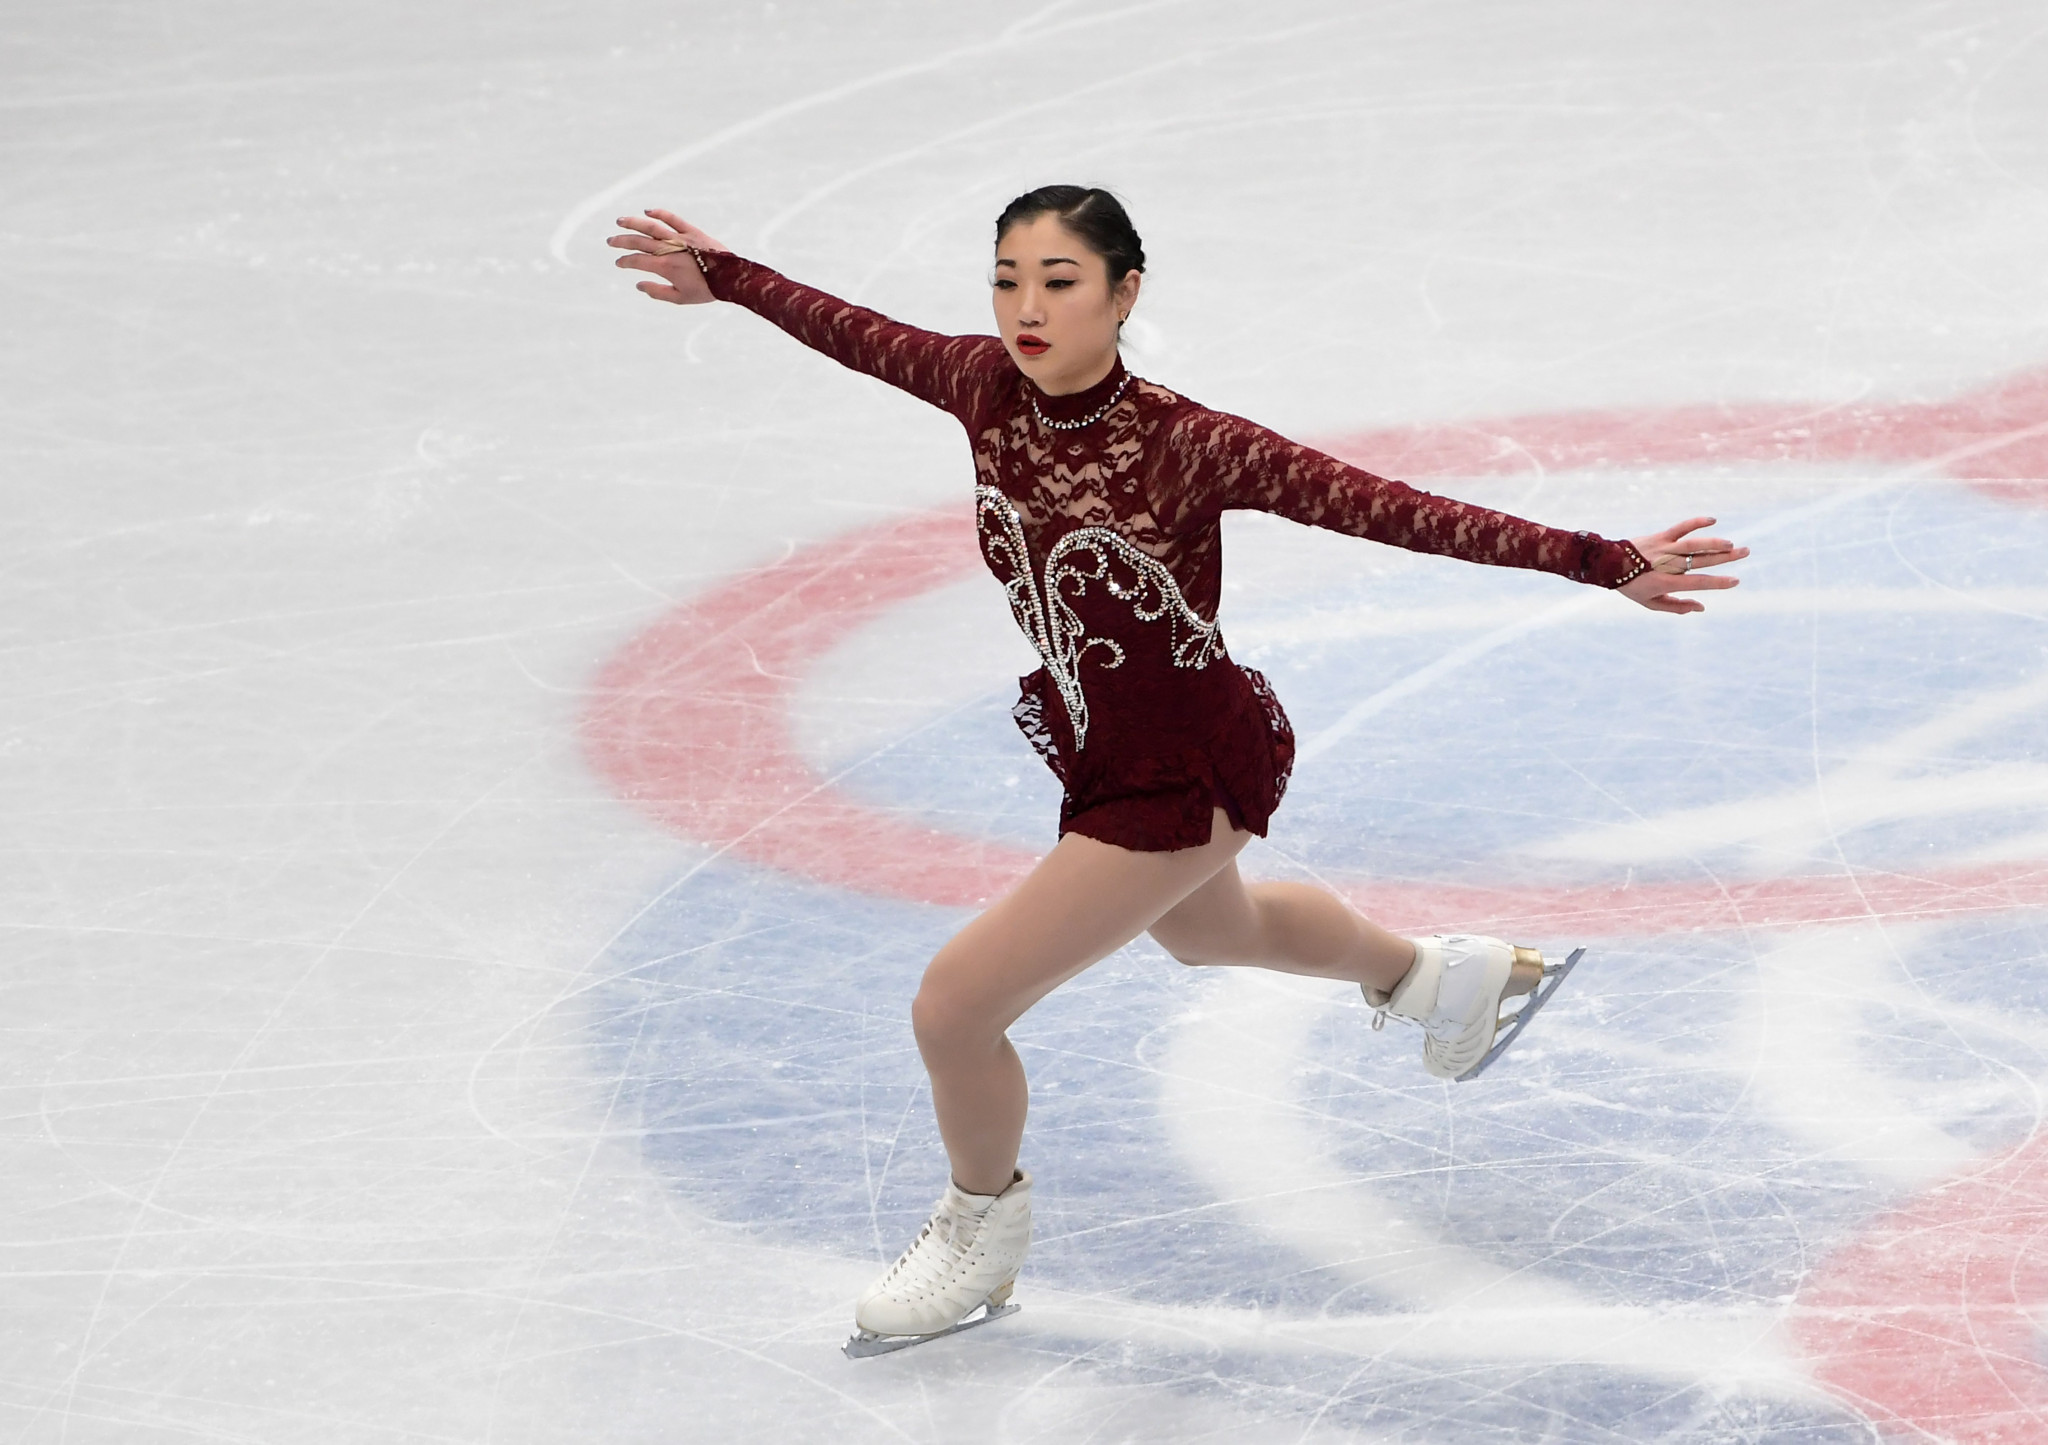 The United States' Mirai Nagasu has announced plans to take an indefinite break from competitive figure skating ©Getty Images